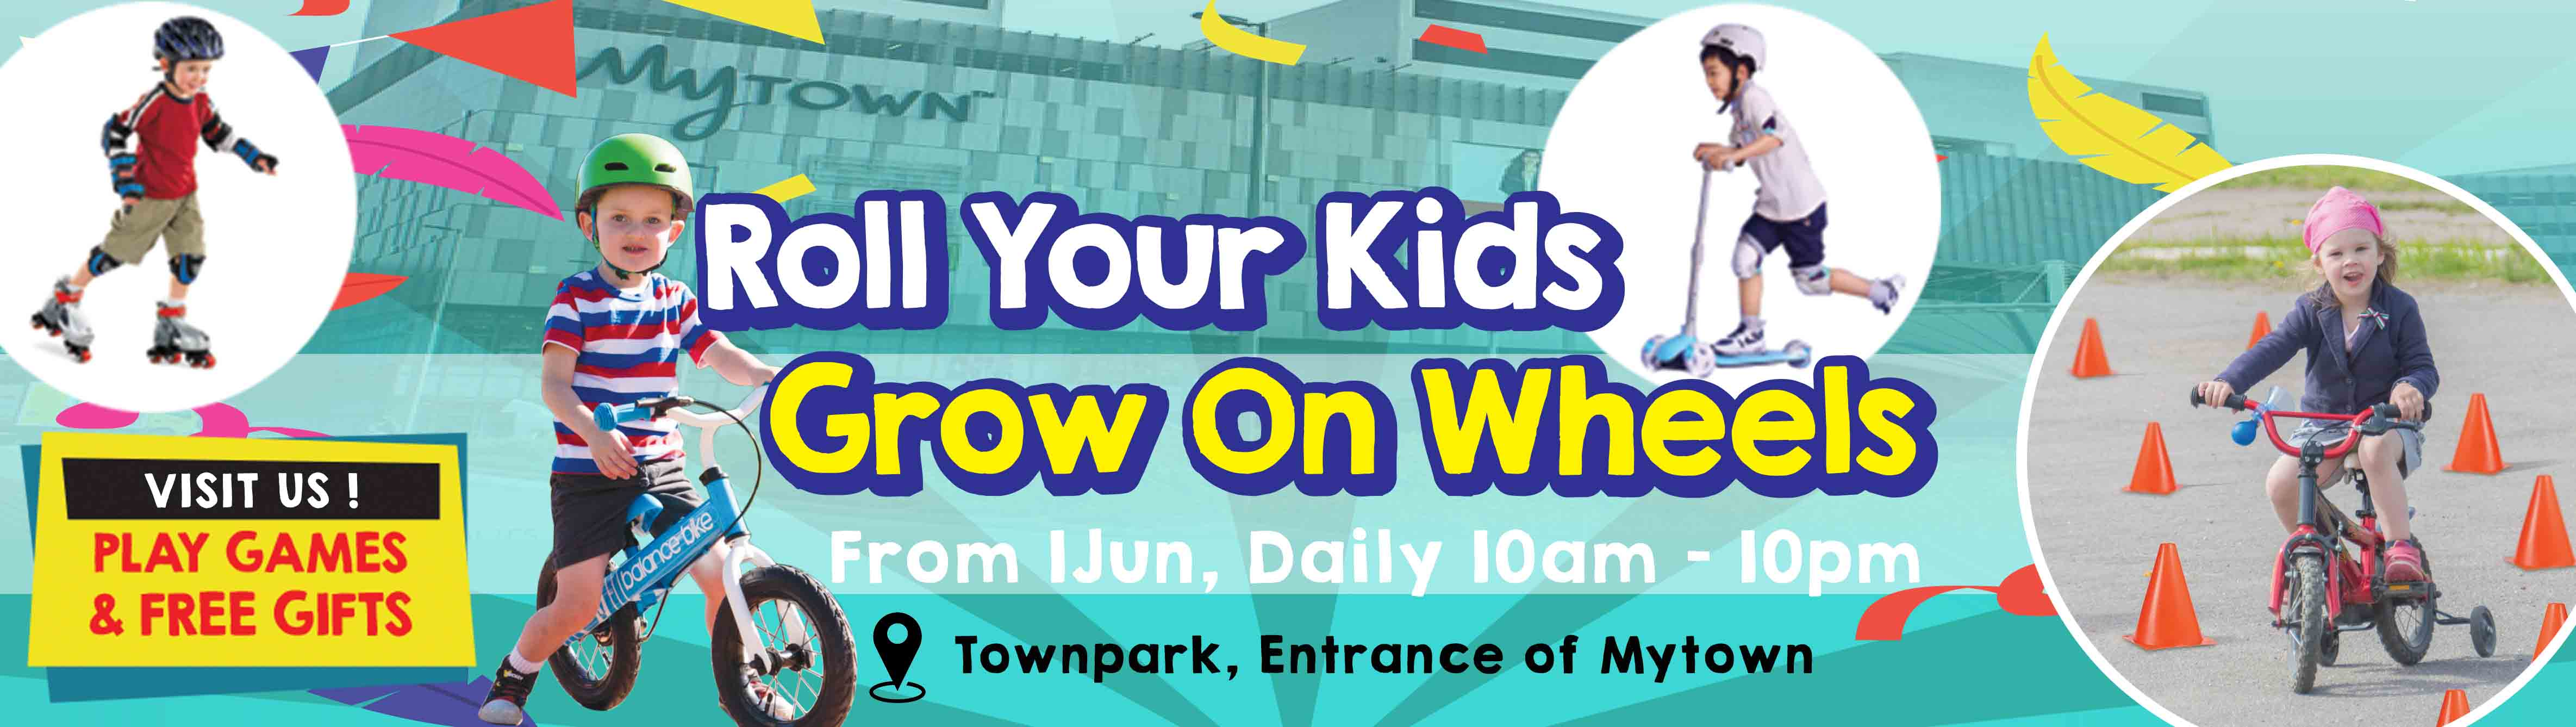 Roll Your Kids Grow On Wheels with KLBicycle at Mytown